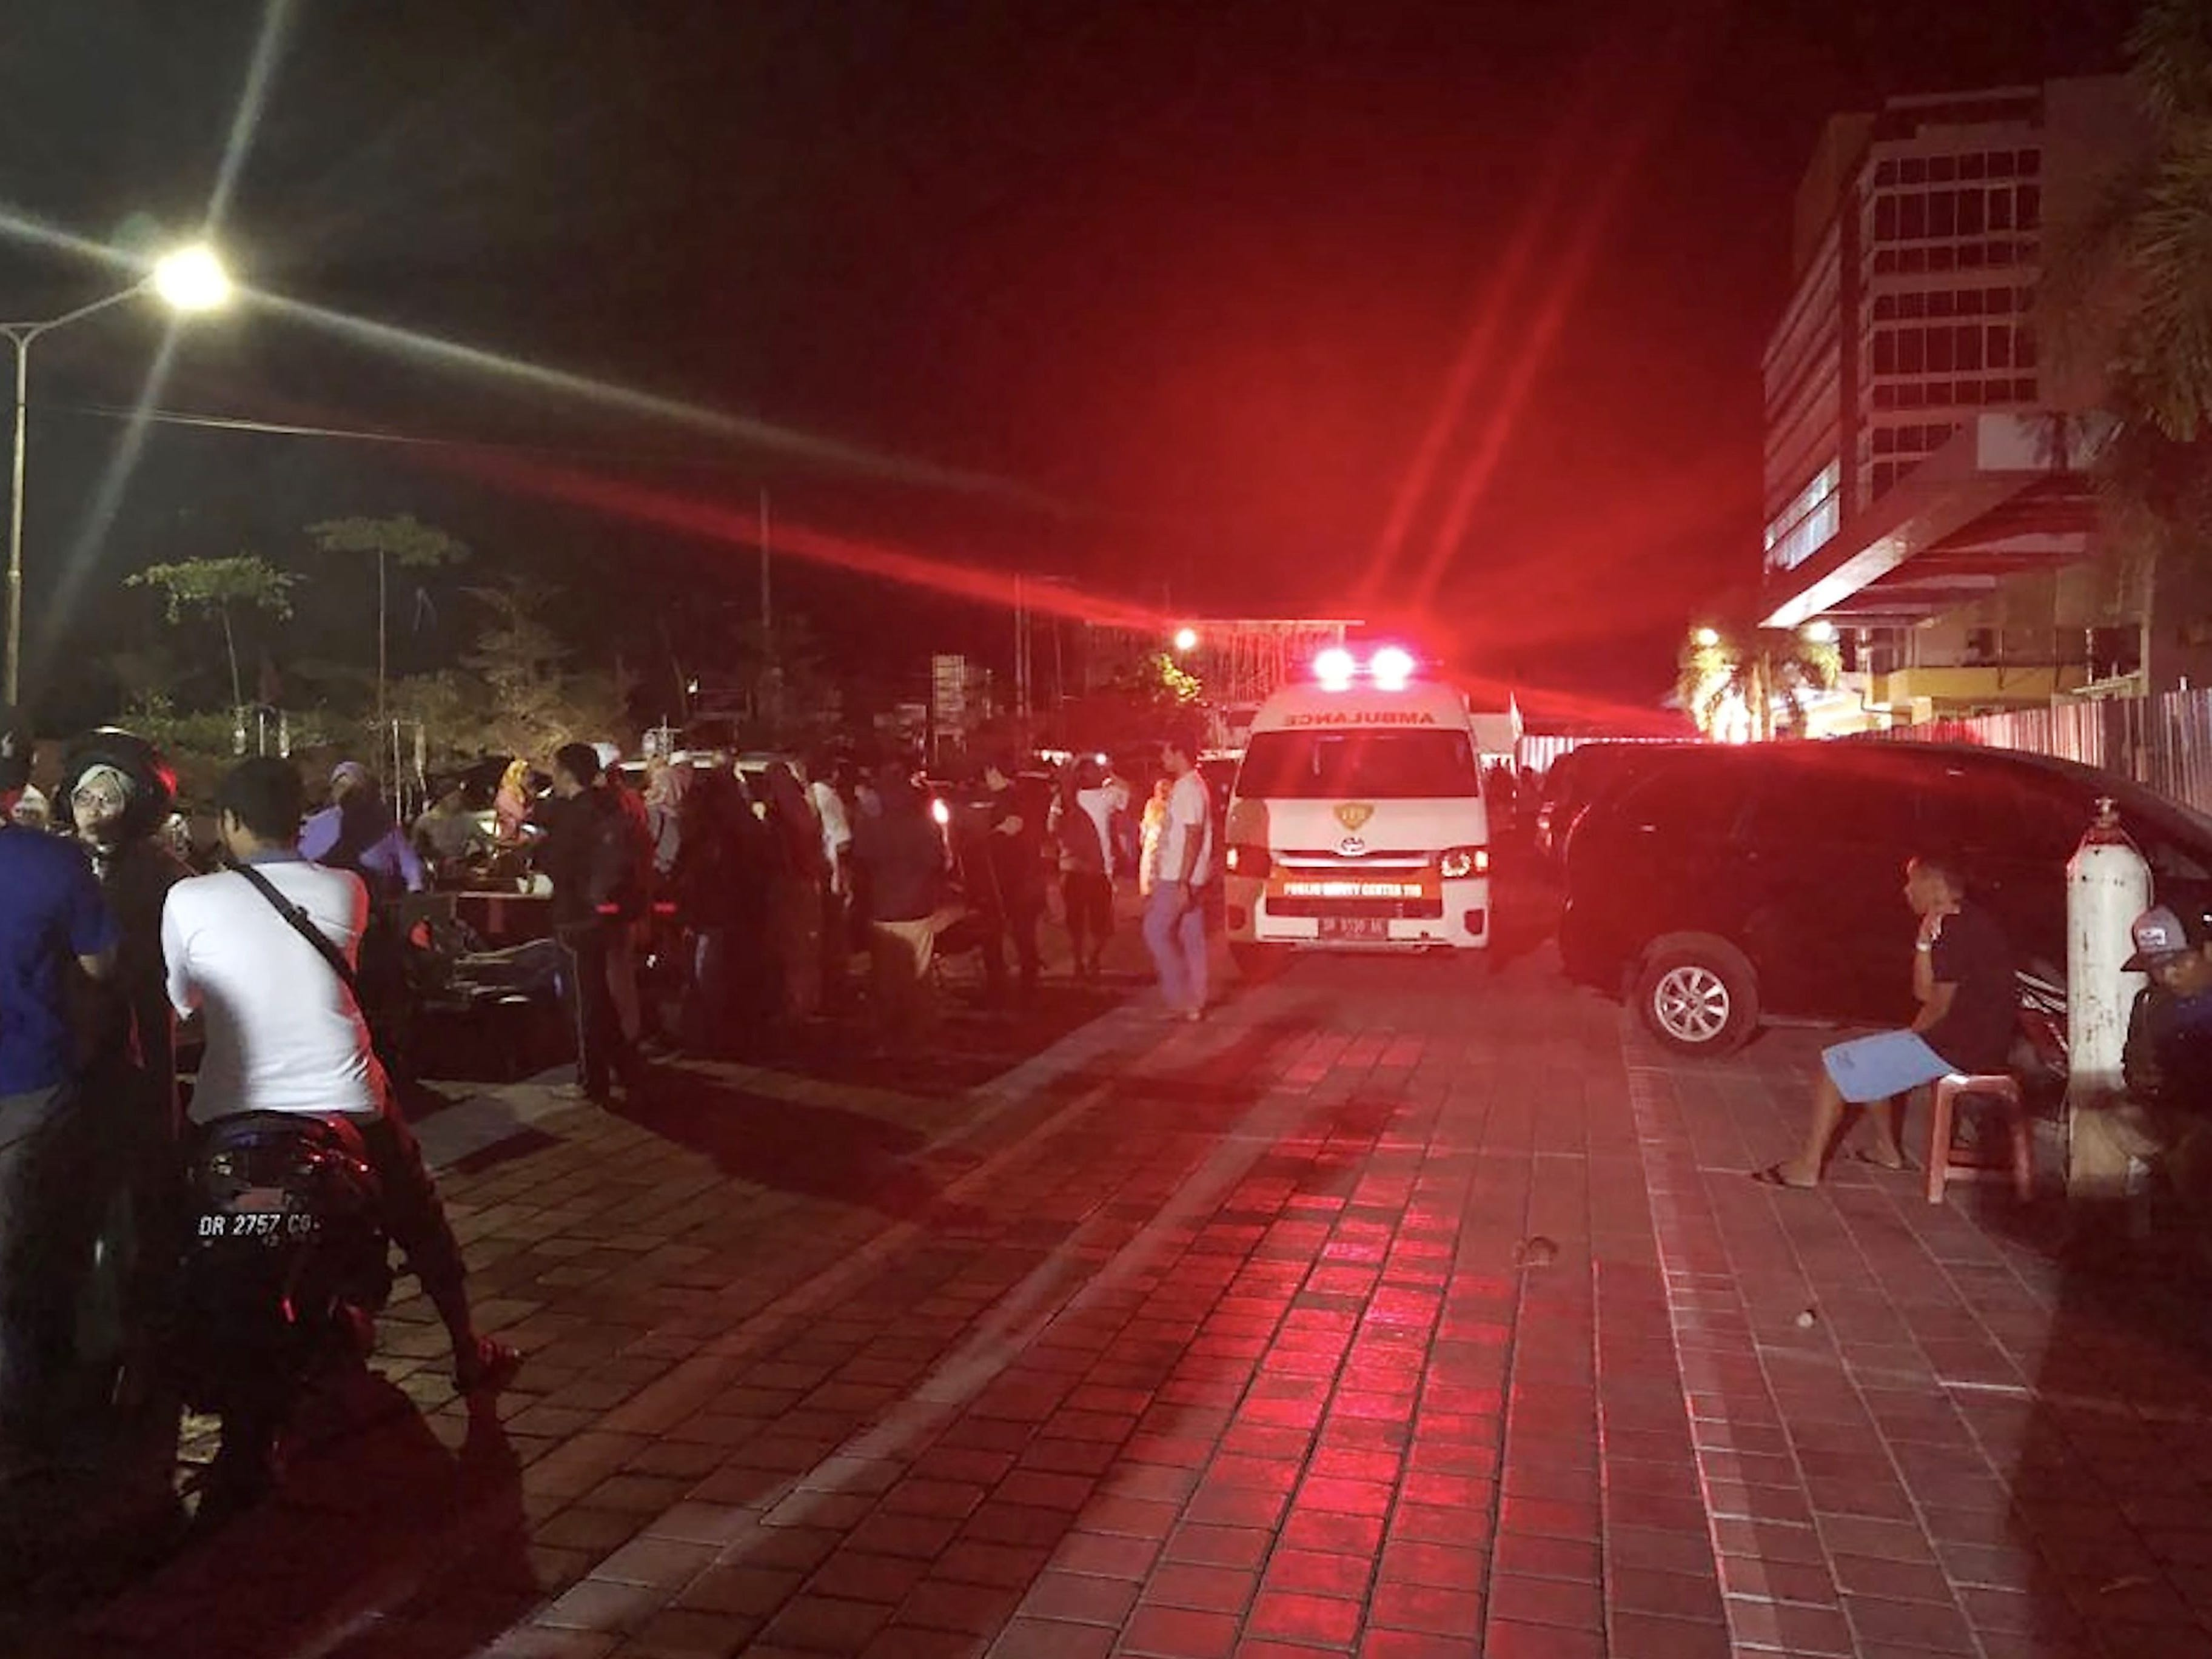 An ambulance rushes out of the hospital after an earthquake rocked Indonesia's Lombok island, in Mataram on August 5, 2018.  A powerful earthquake rocked Indonesia's Lombok on Aug. 5, sending people running from their homes and triggering a tsunami alert, just a week after a quake killed 17 people on the holiday island. The latest tremor had a magnitude of seven and struck just 10 km underground according to the US Geological Survey. It was followed by two aftershocks.